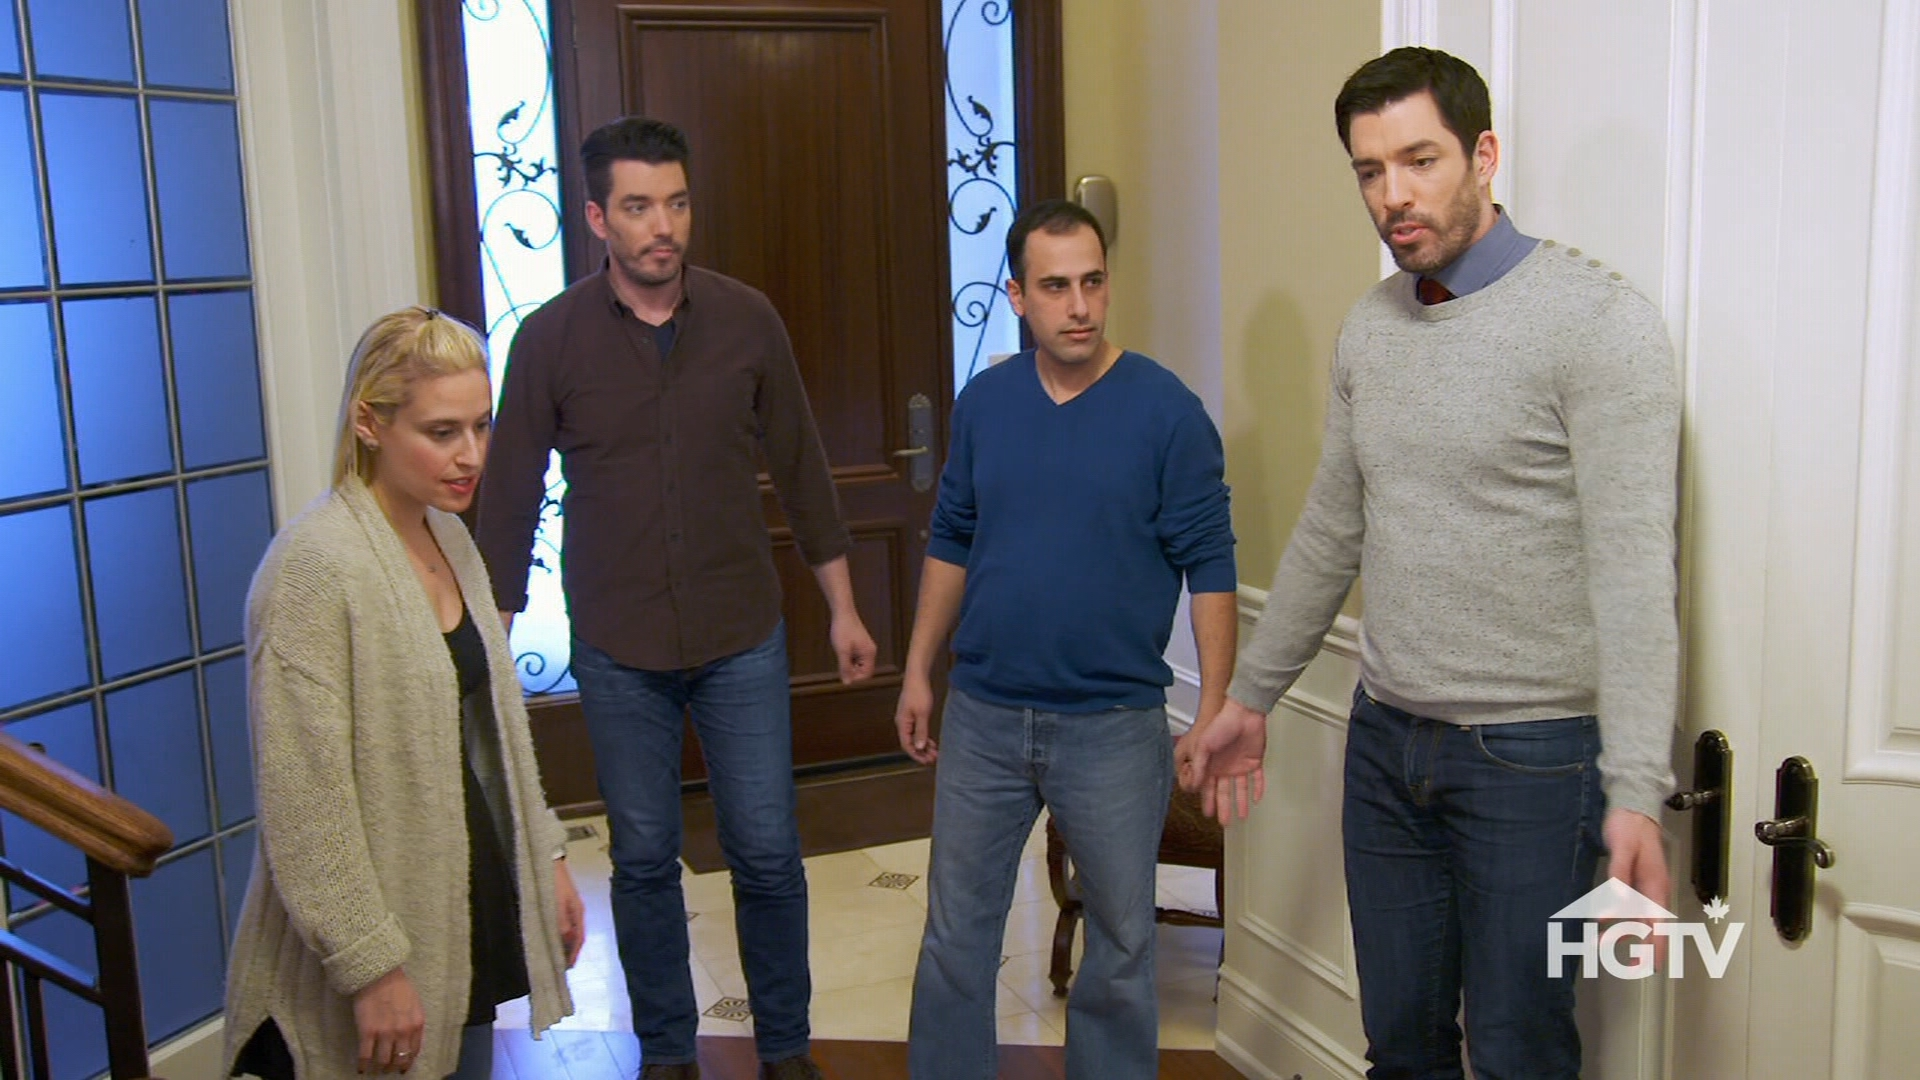 property brothers rave u0026 michelle - Where Are The Property Brothers